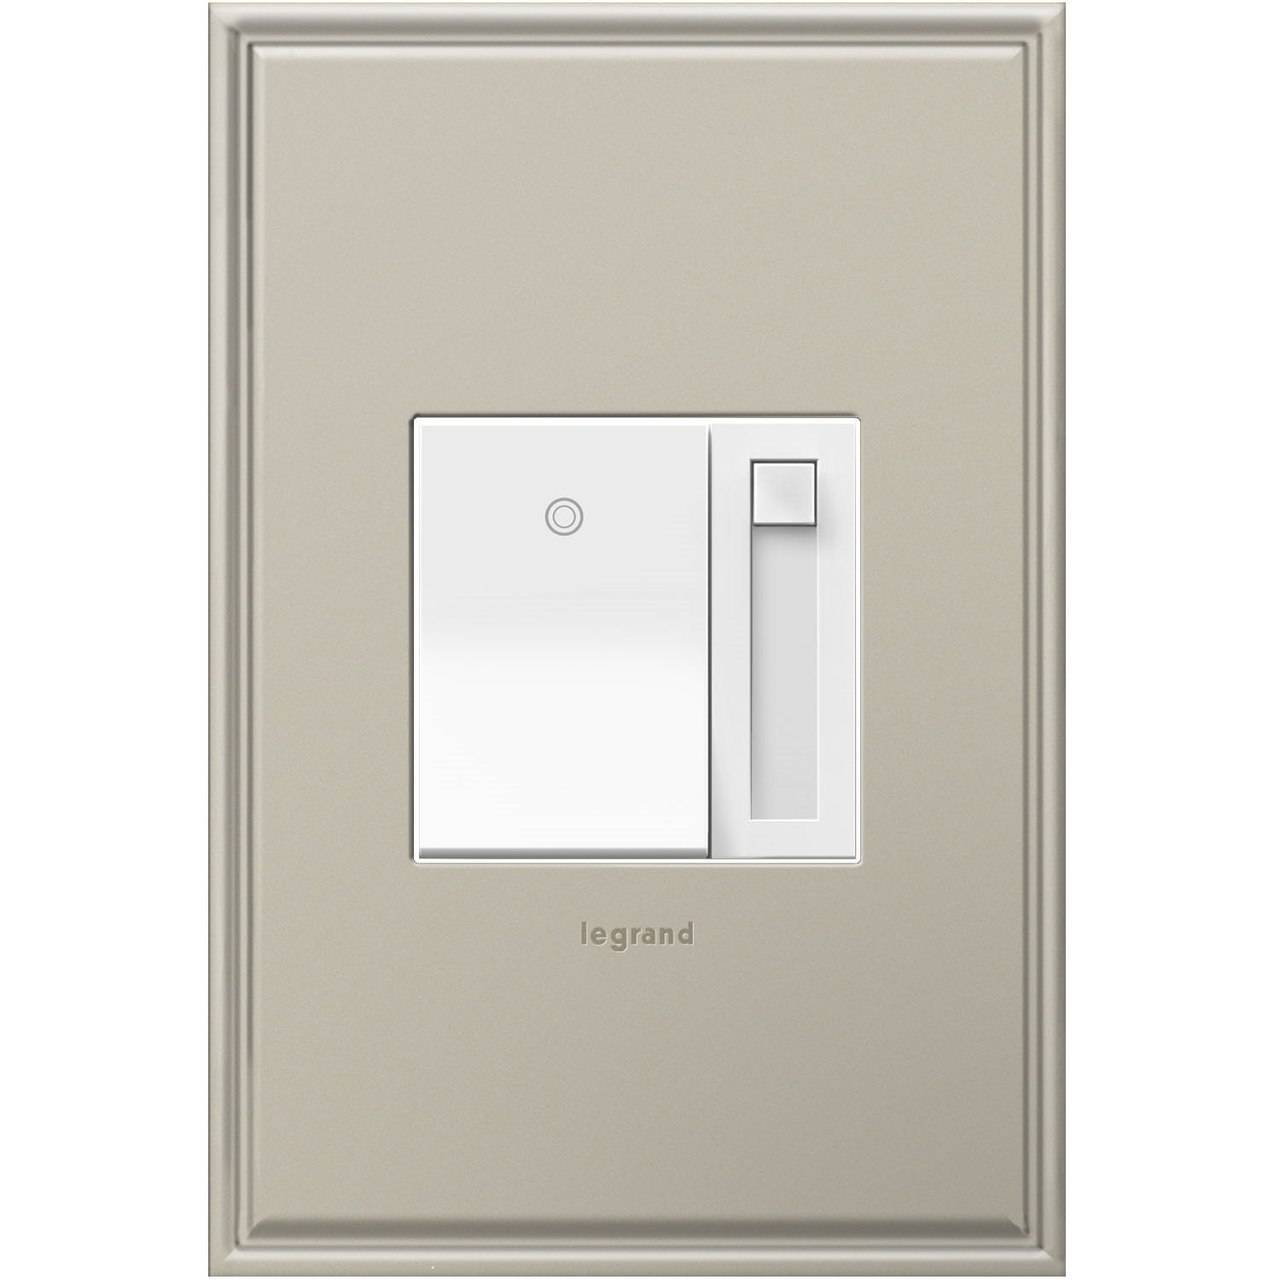 Legrand adorne cfl led paddle dimmer switch at Brand LIghting